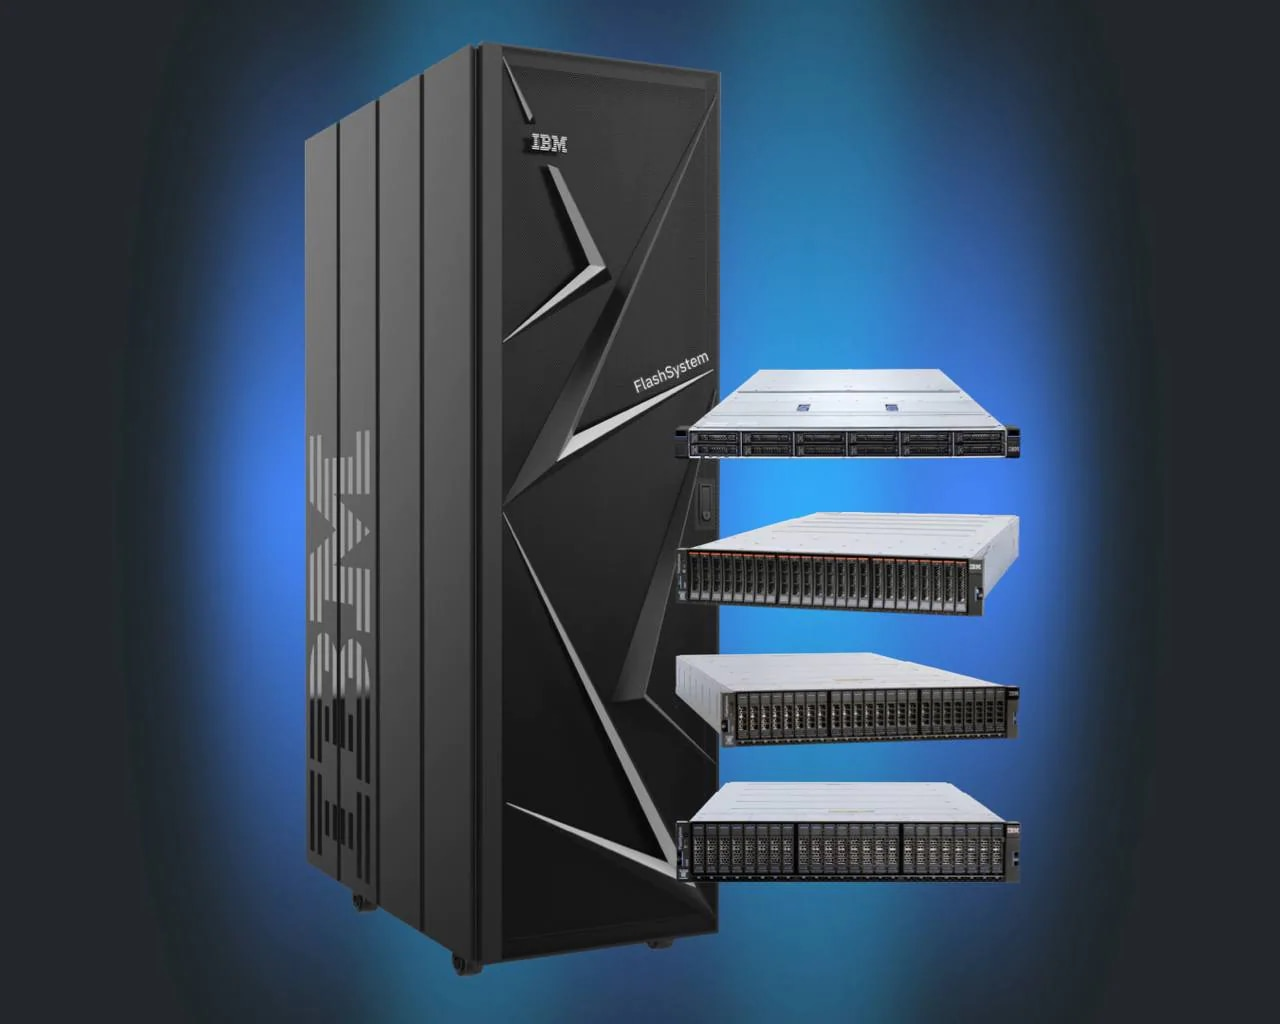 IBM FlashSystem server family